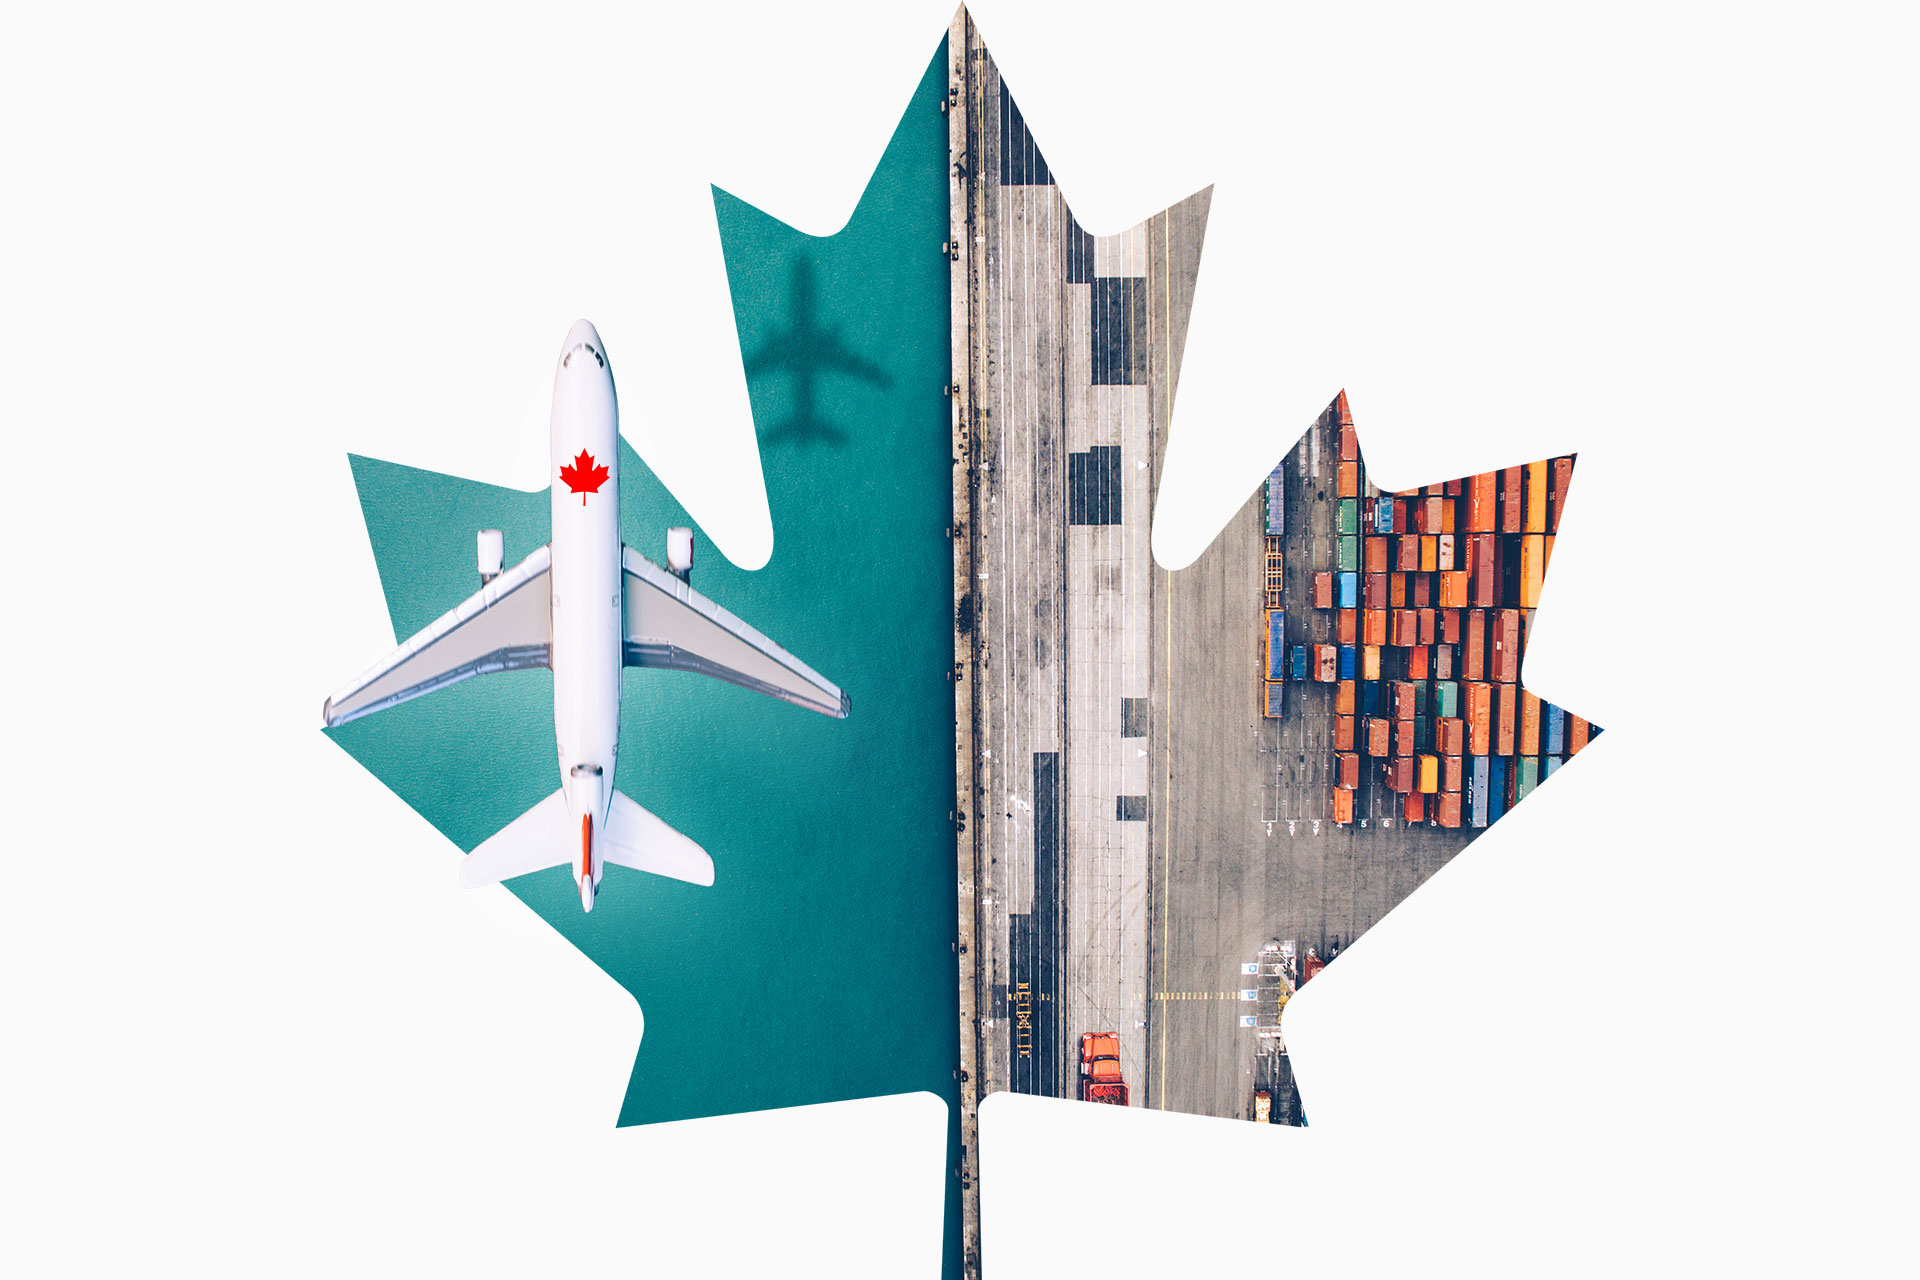 Oh Canada! - We take care of our Canadian travel clients by offering them the richest air content of any online booking tool in Canada.